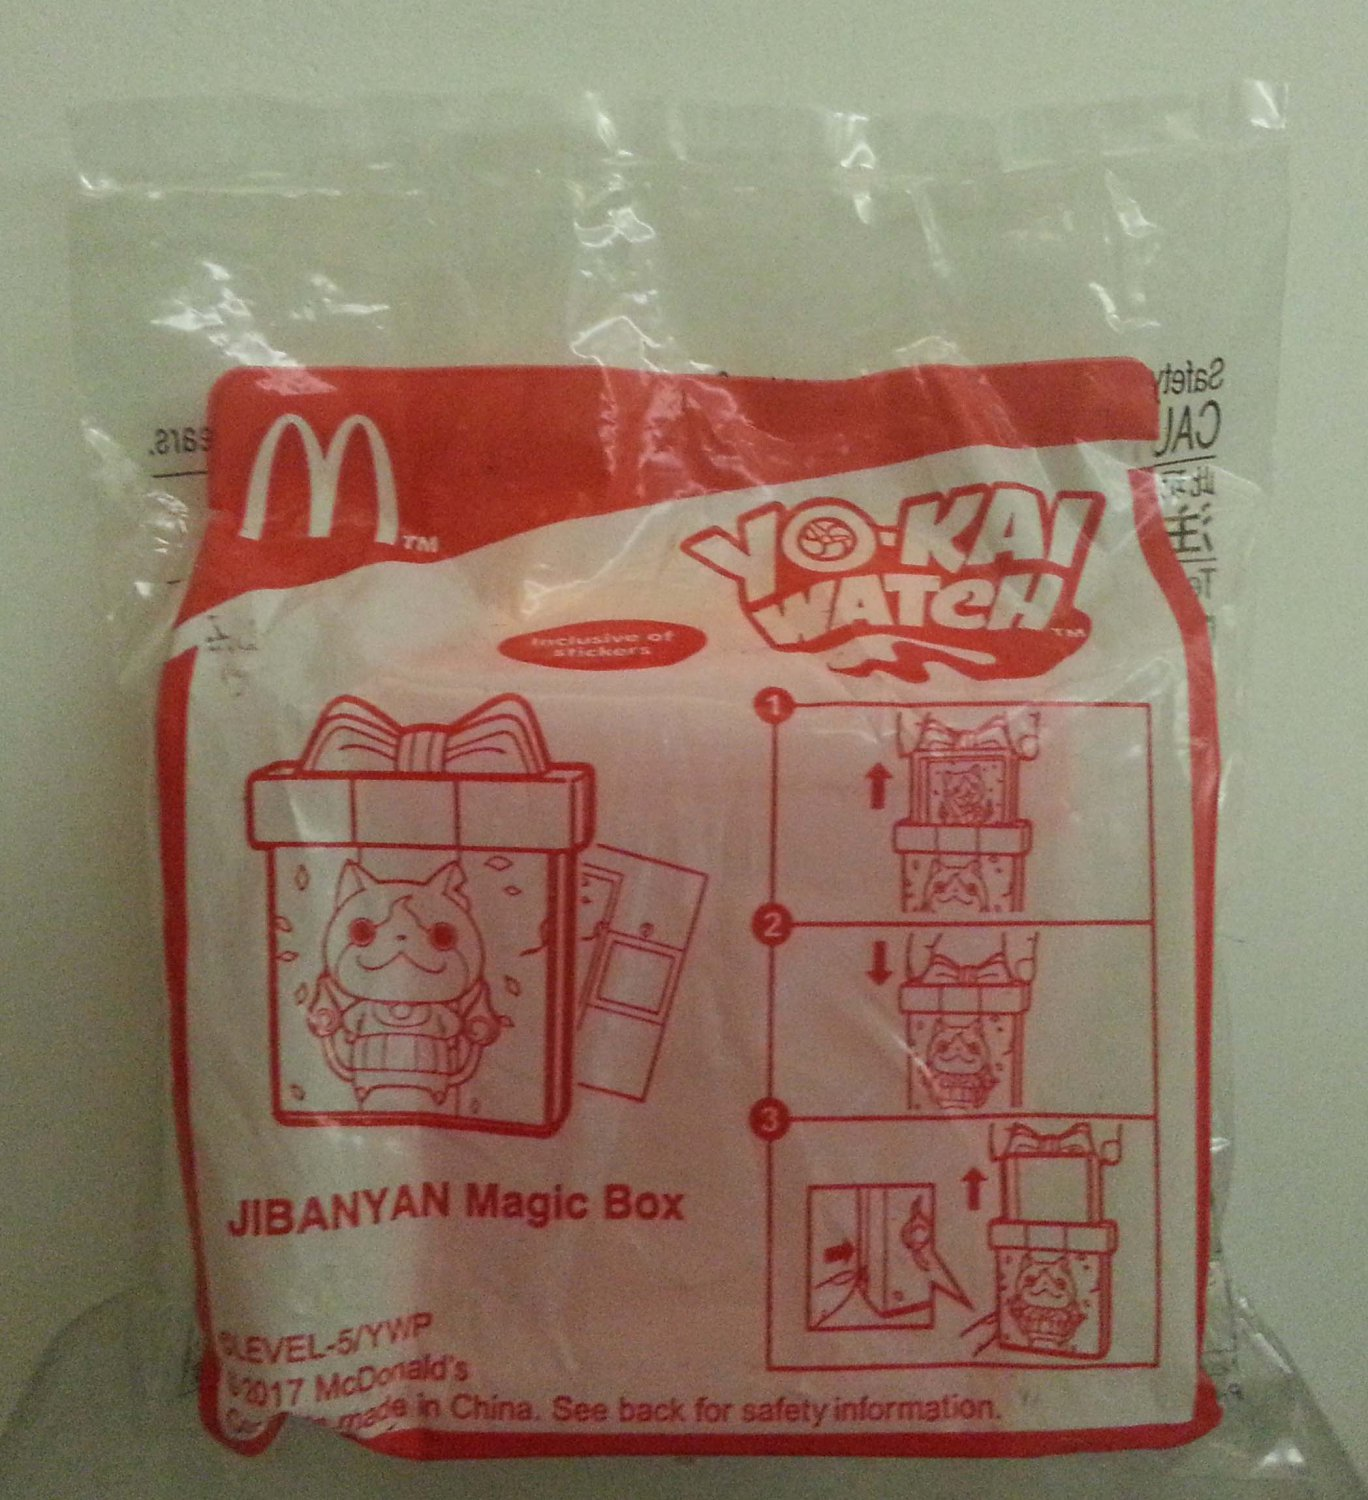 2017 McDonald's Yo-Kai Watch Happy Meal Toy - JIBANYAN Magic Box